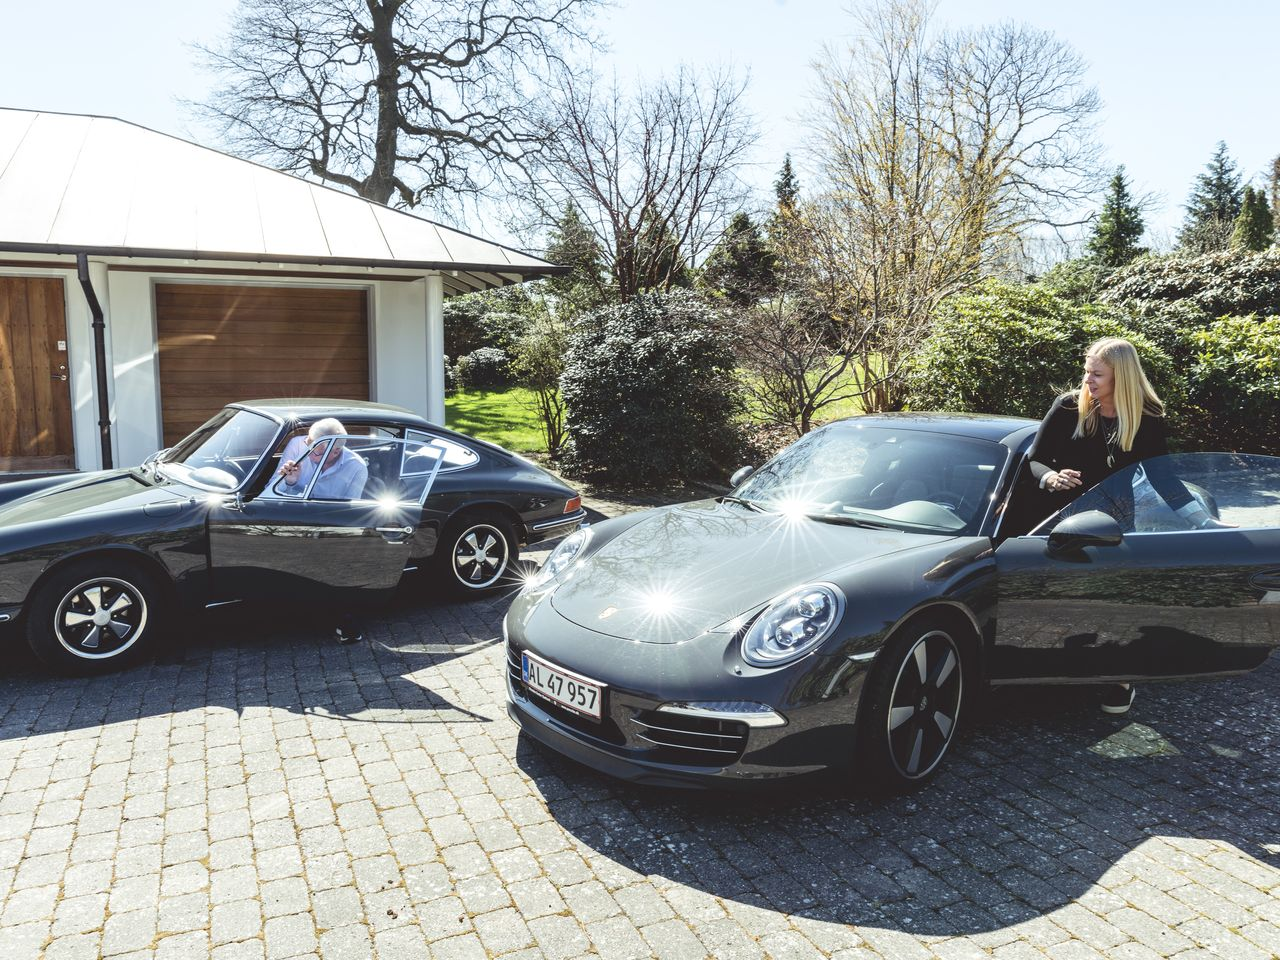 Father and daughter also enjoy driving for fun. On that day Lars Erik Nielsen drove a 1967 Porsche 911 with 130 hp, and Christina Nielsen a Porsche 911 Carrera S, of which 1,963 were made in 2013 to mark the model's fiftieth anniversary.